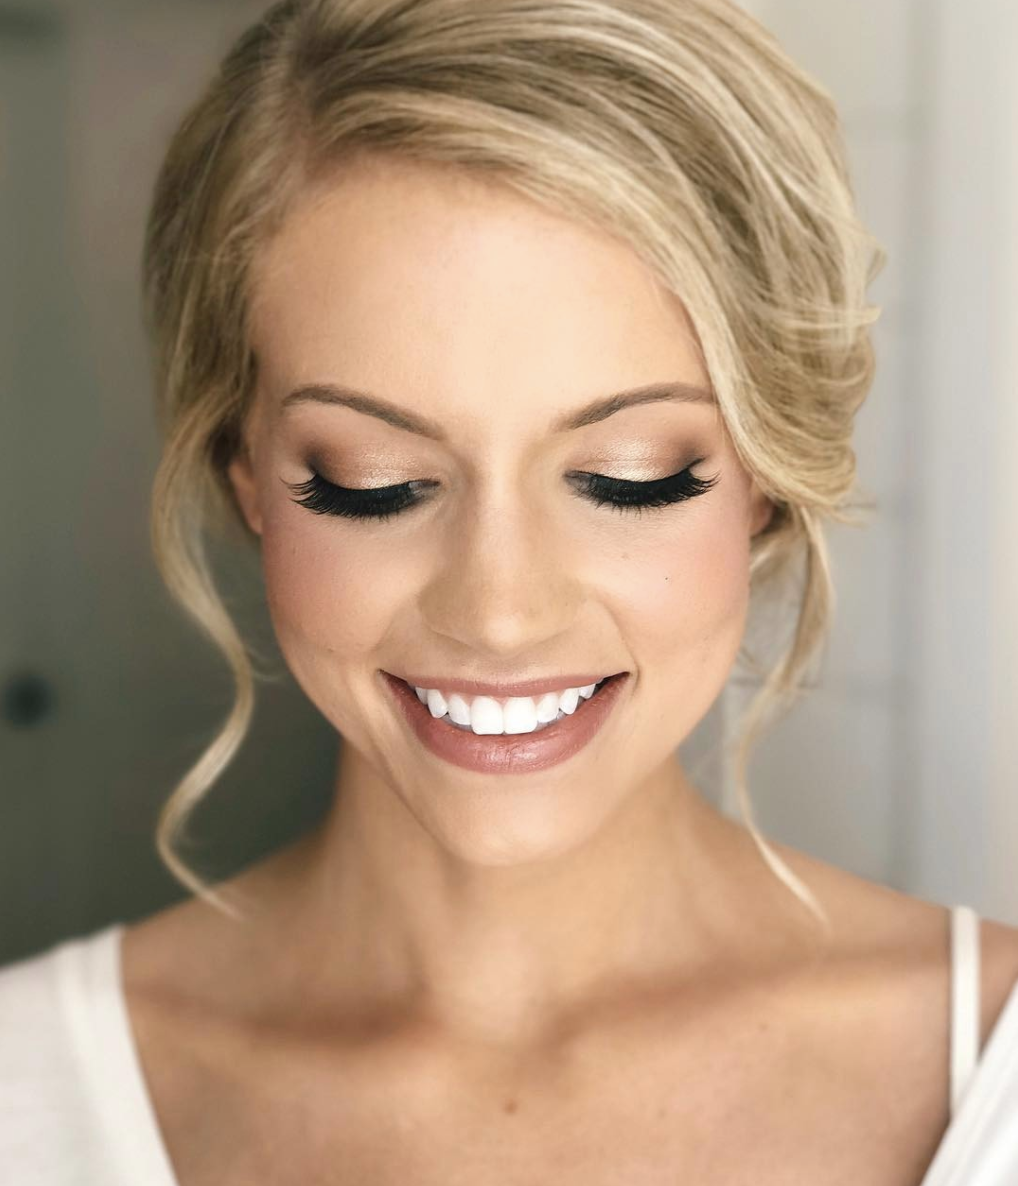 Pin By Hesti Yuniastuti On Makeup Blonde Hair Makeup Wedding Makeup Tips Makeup For Blondes